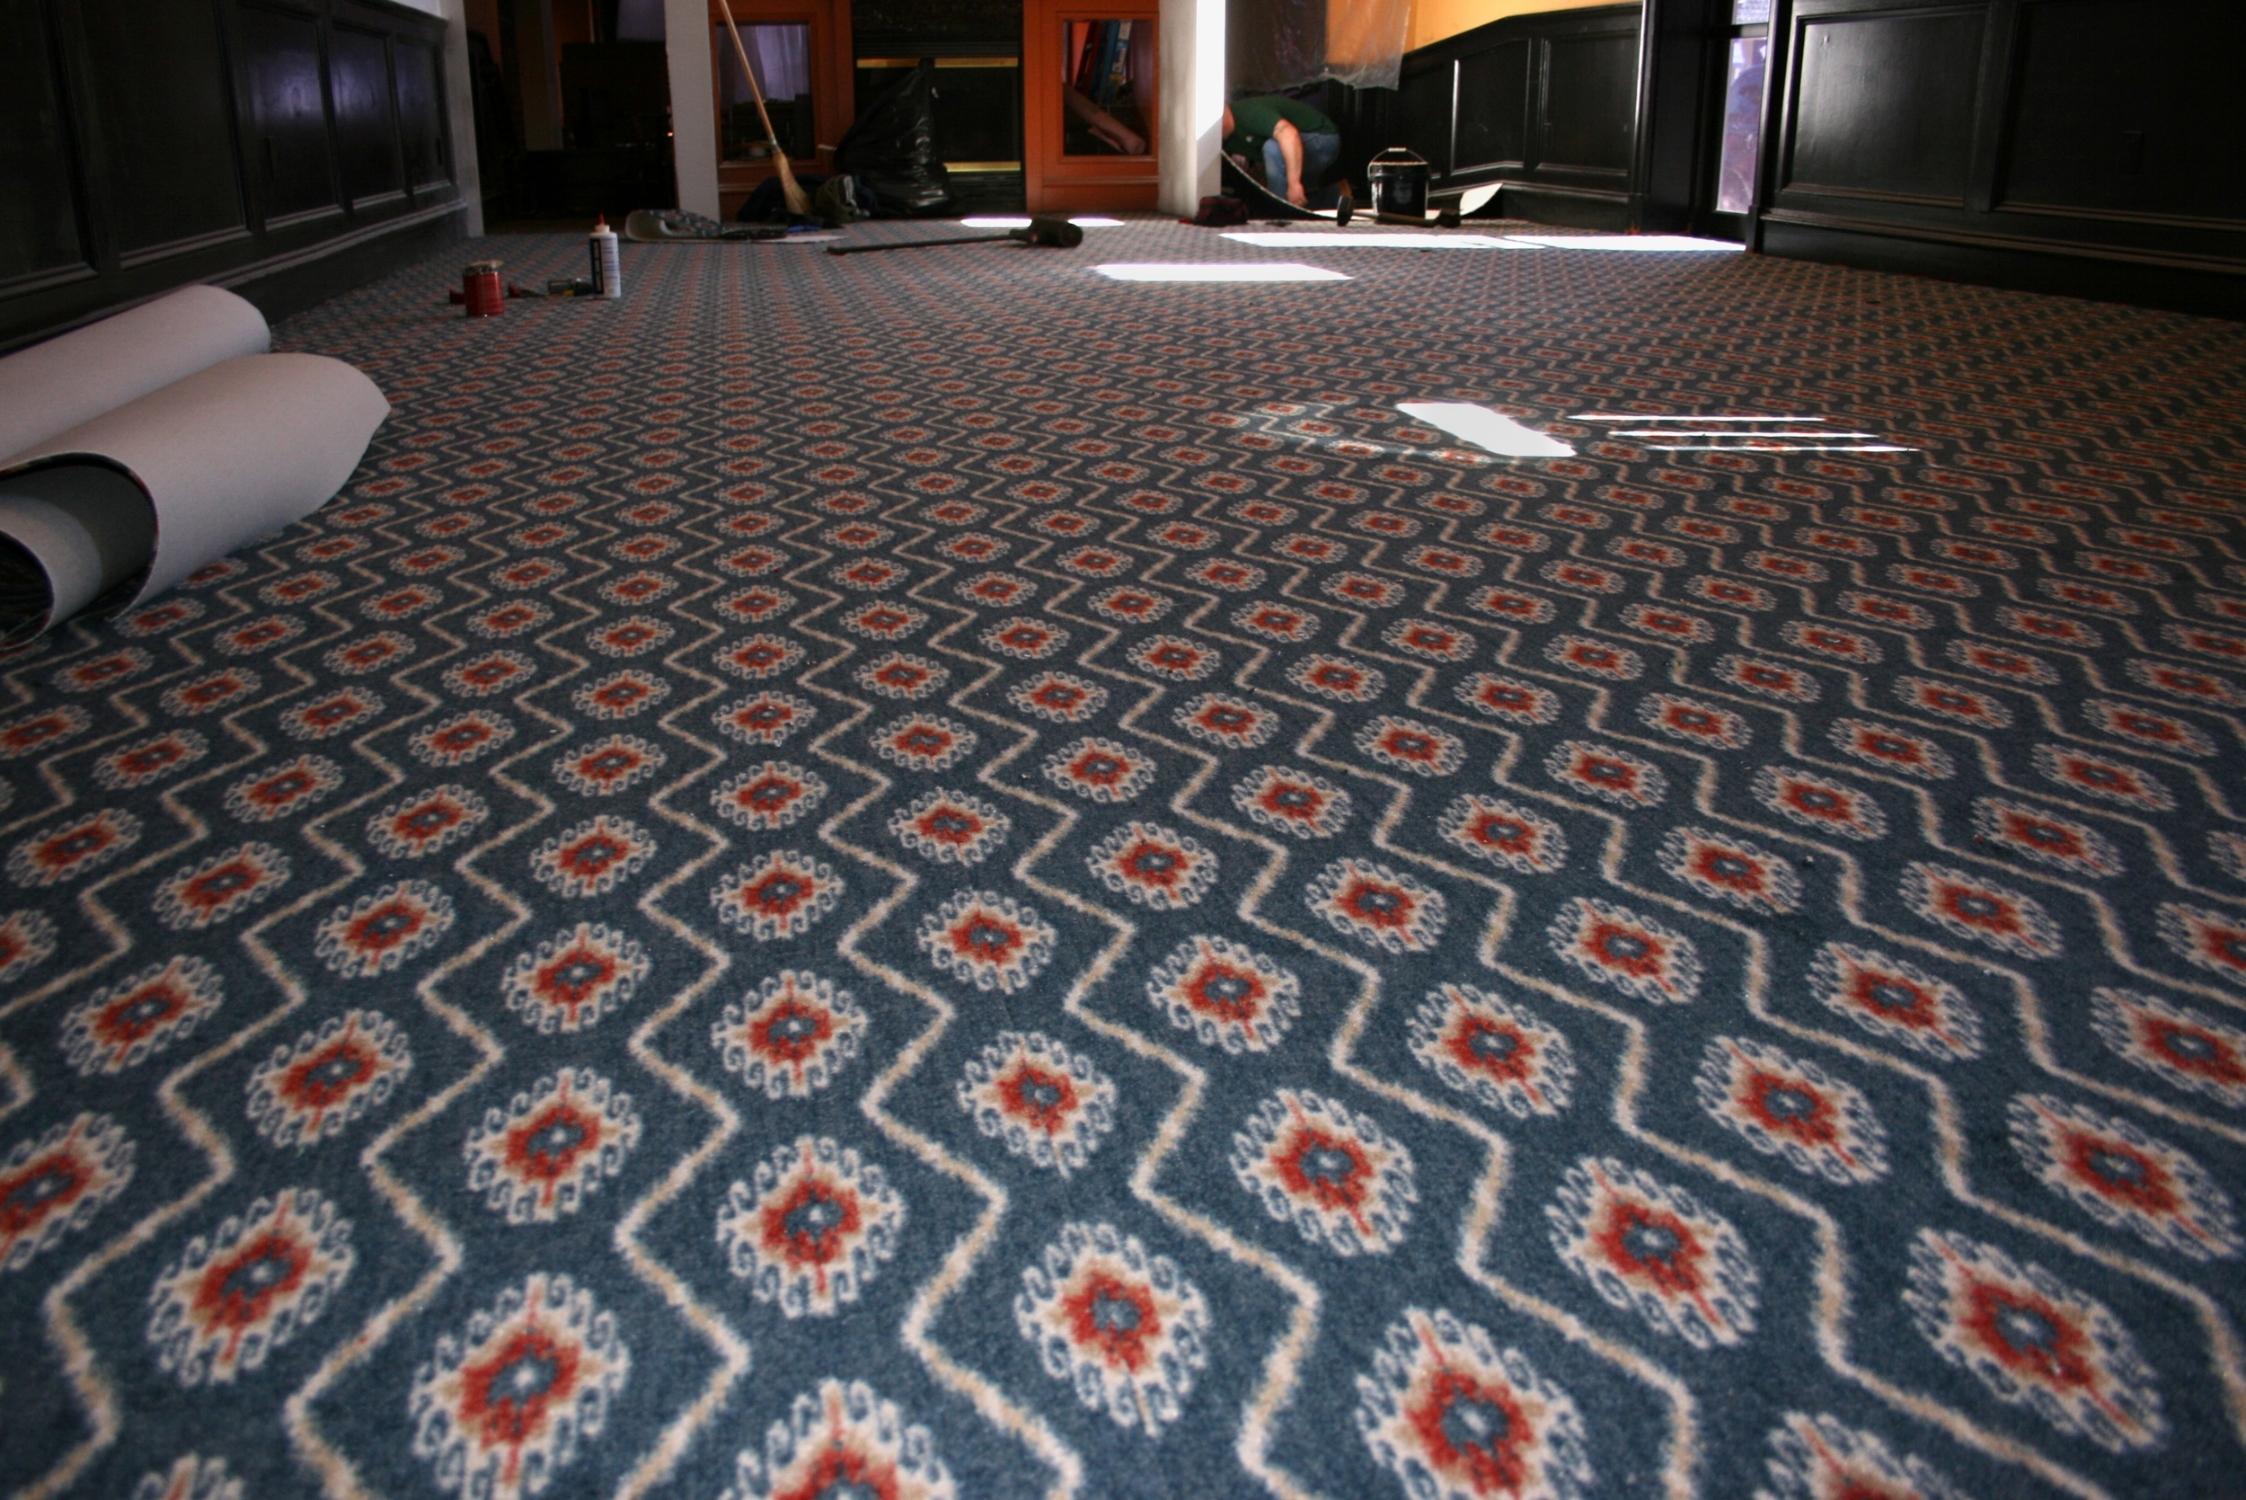 Vibrant patterned carpeting in the local 8th & Union Kitchen restaurant